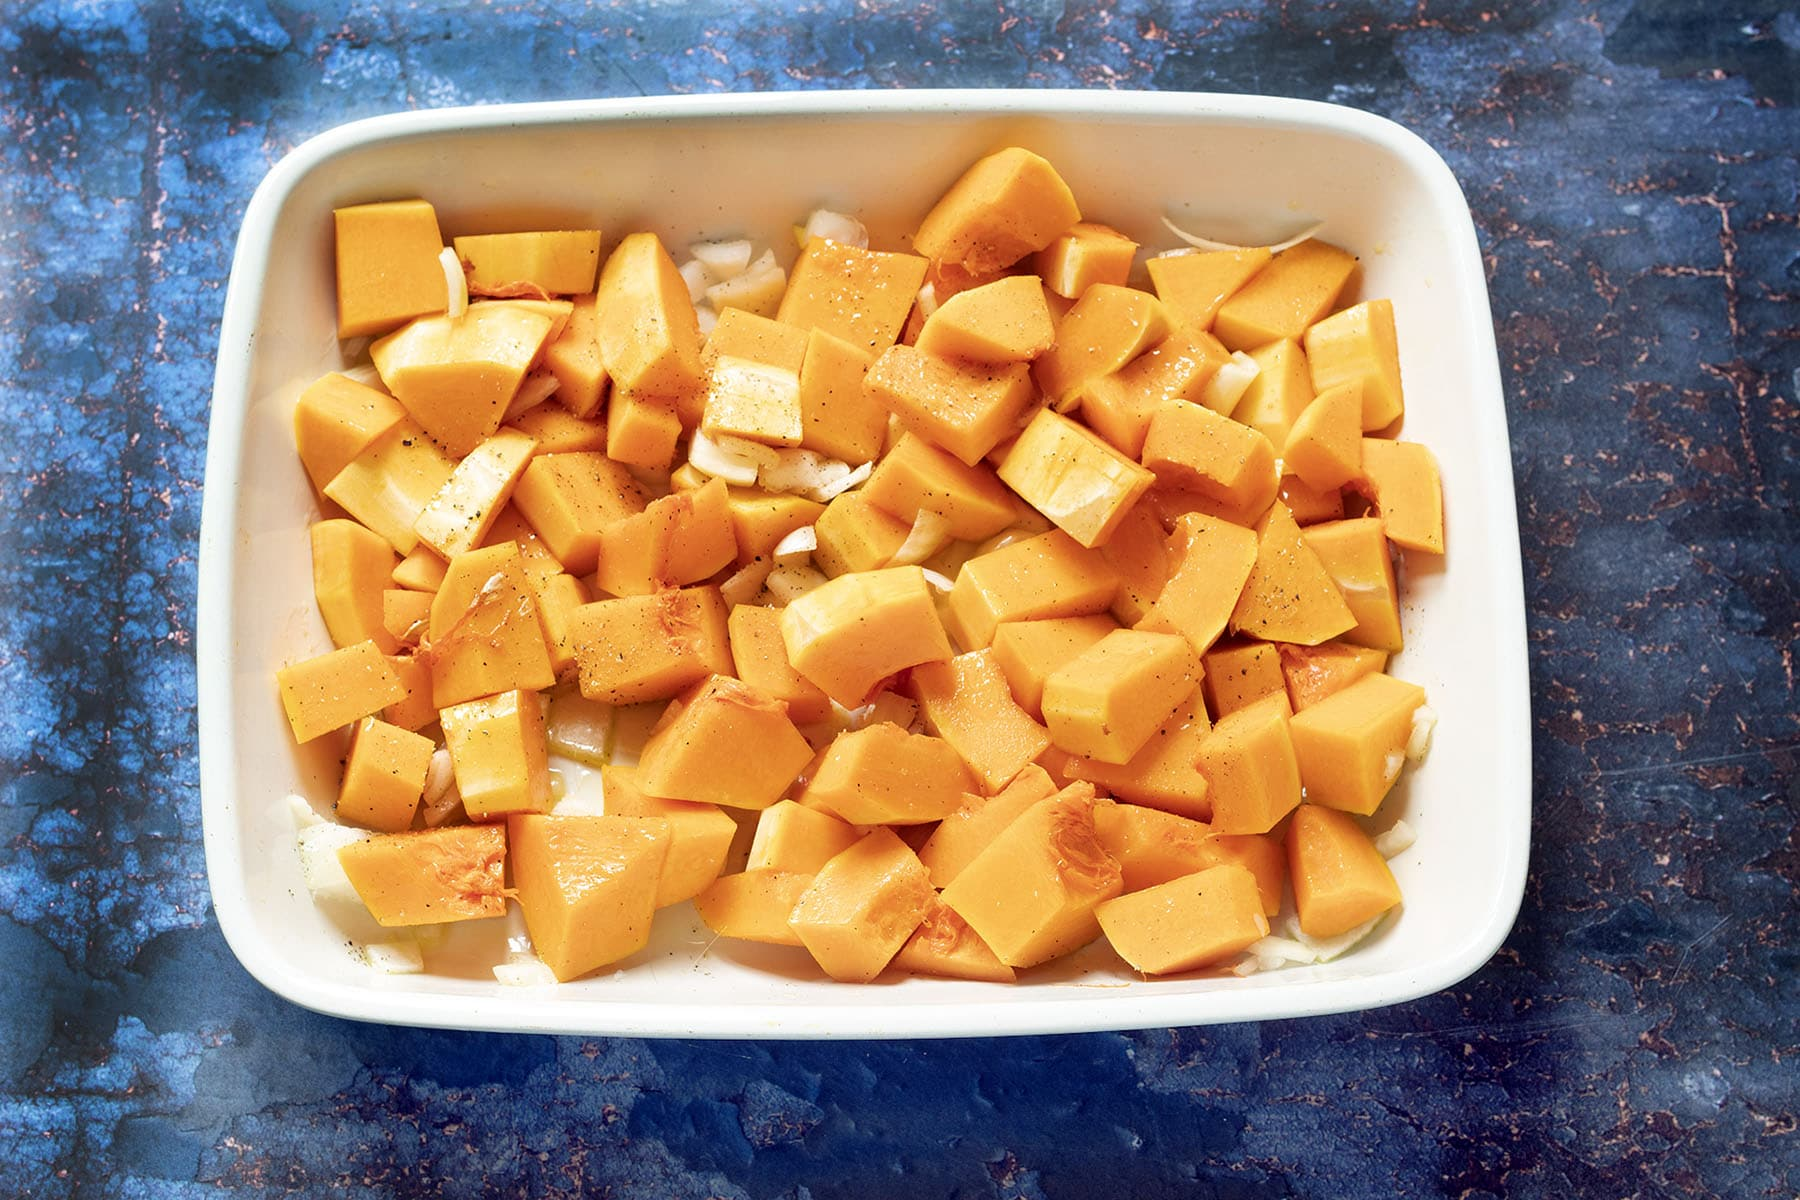 uncooked butternut squash and onion in roasting dish